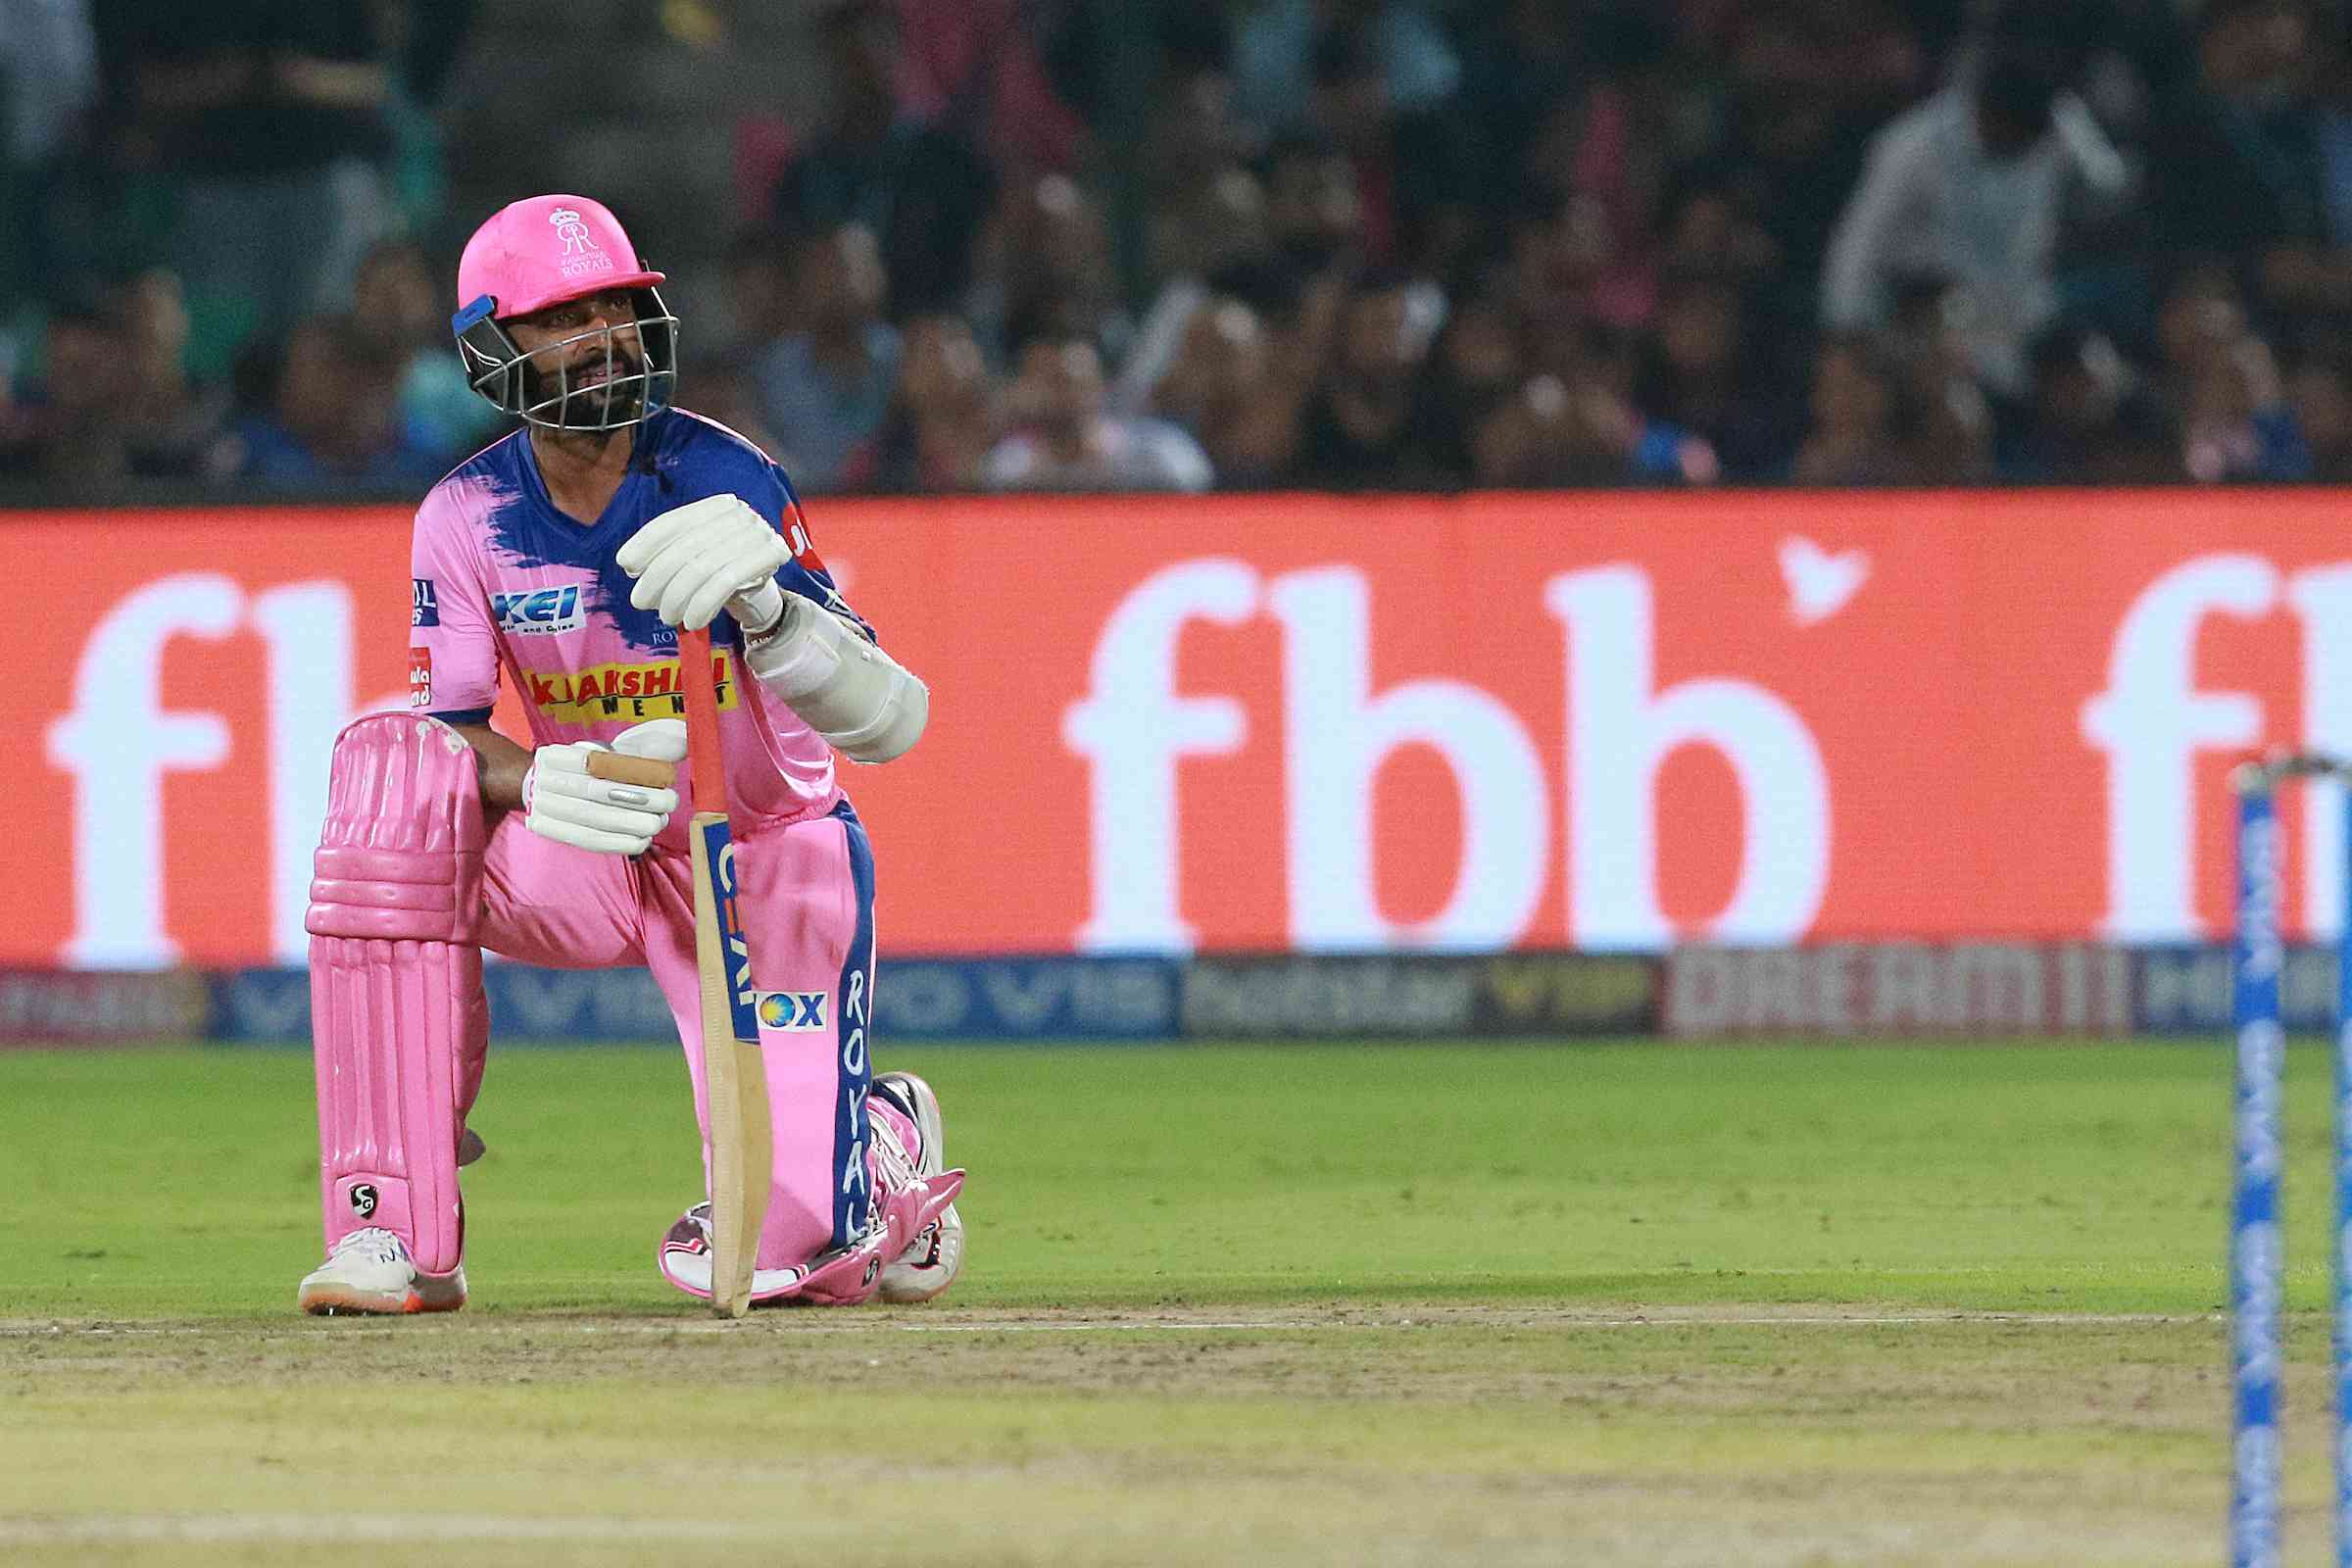 Ajinkya Rahane during IPL 2019 – Rahul Gulati / Sportzpics for BCCI